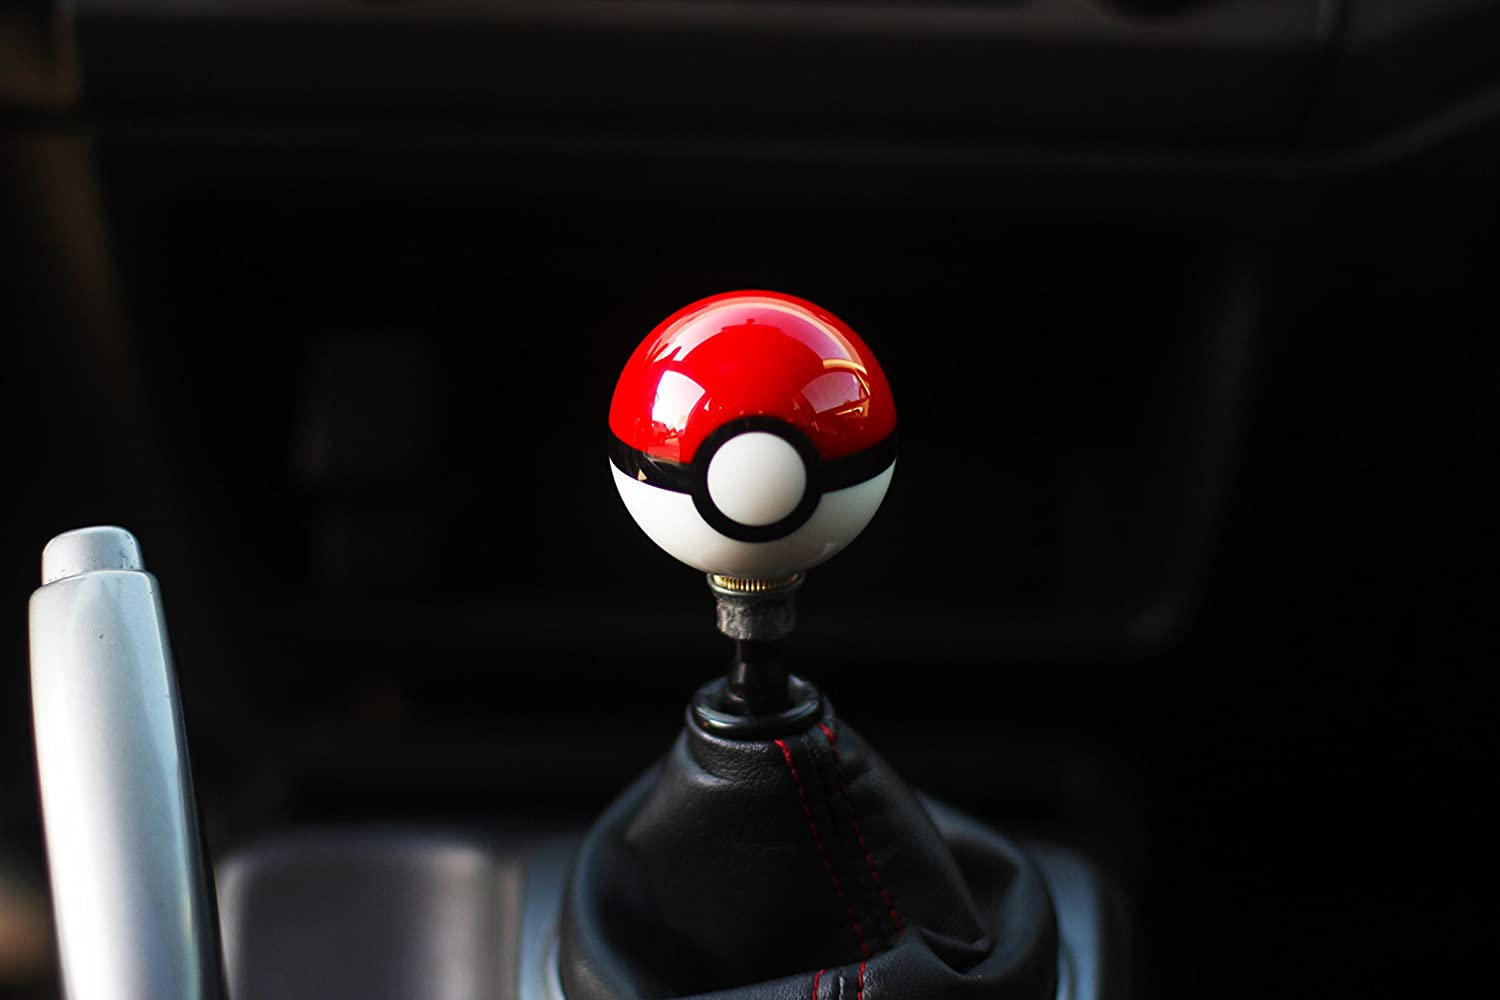 Amazon.com: Kei Project Pokemon Pokeball Round Shift Knob Available In  8x1.25 10x1.25 10x1.50 12x1.25 (12x1.25): Home Improvement